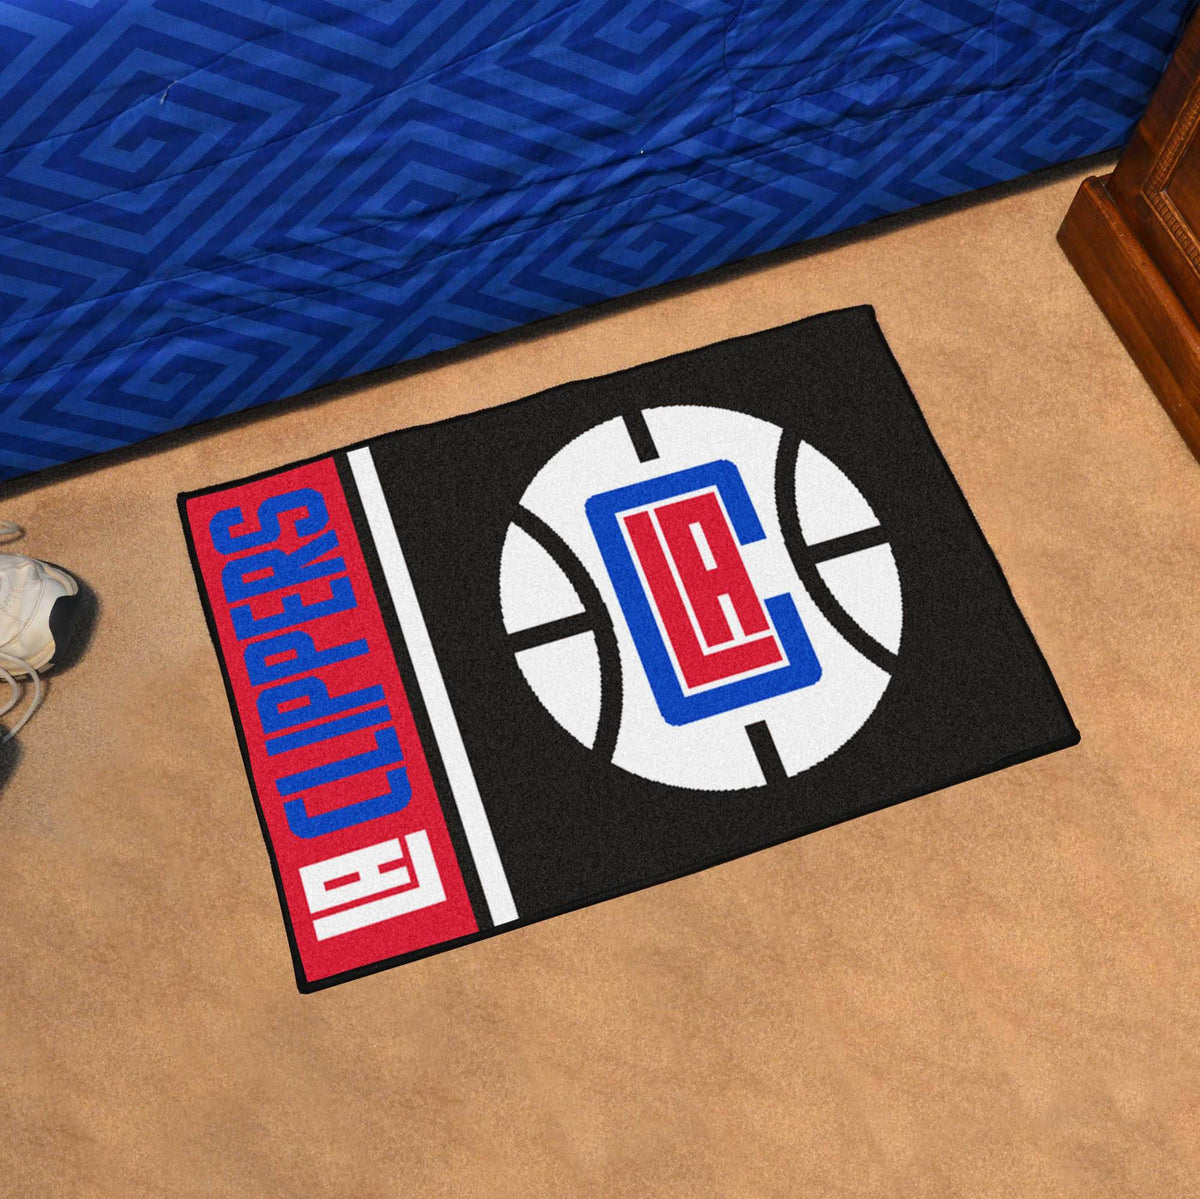 NBA - Uniform Starter Mat NBA Mats, Rectangular Mats, Uniform Starter Mat, NBA, Home Fan Mats Los Angeles Clippers